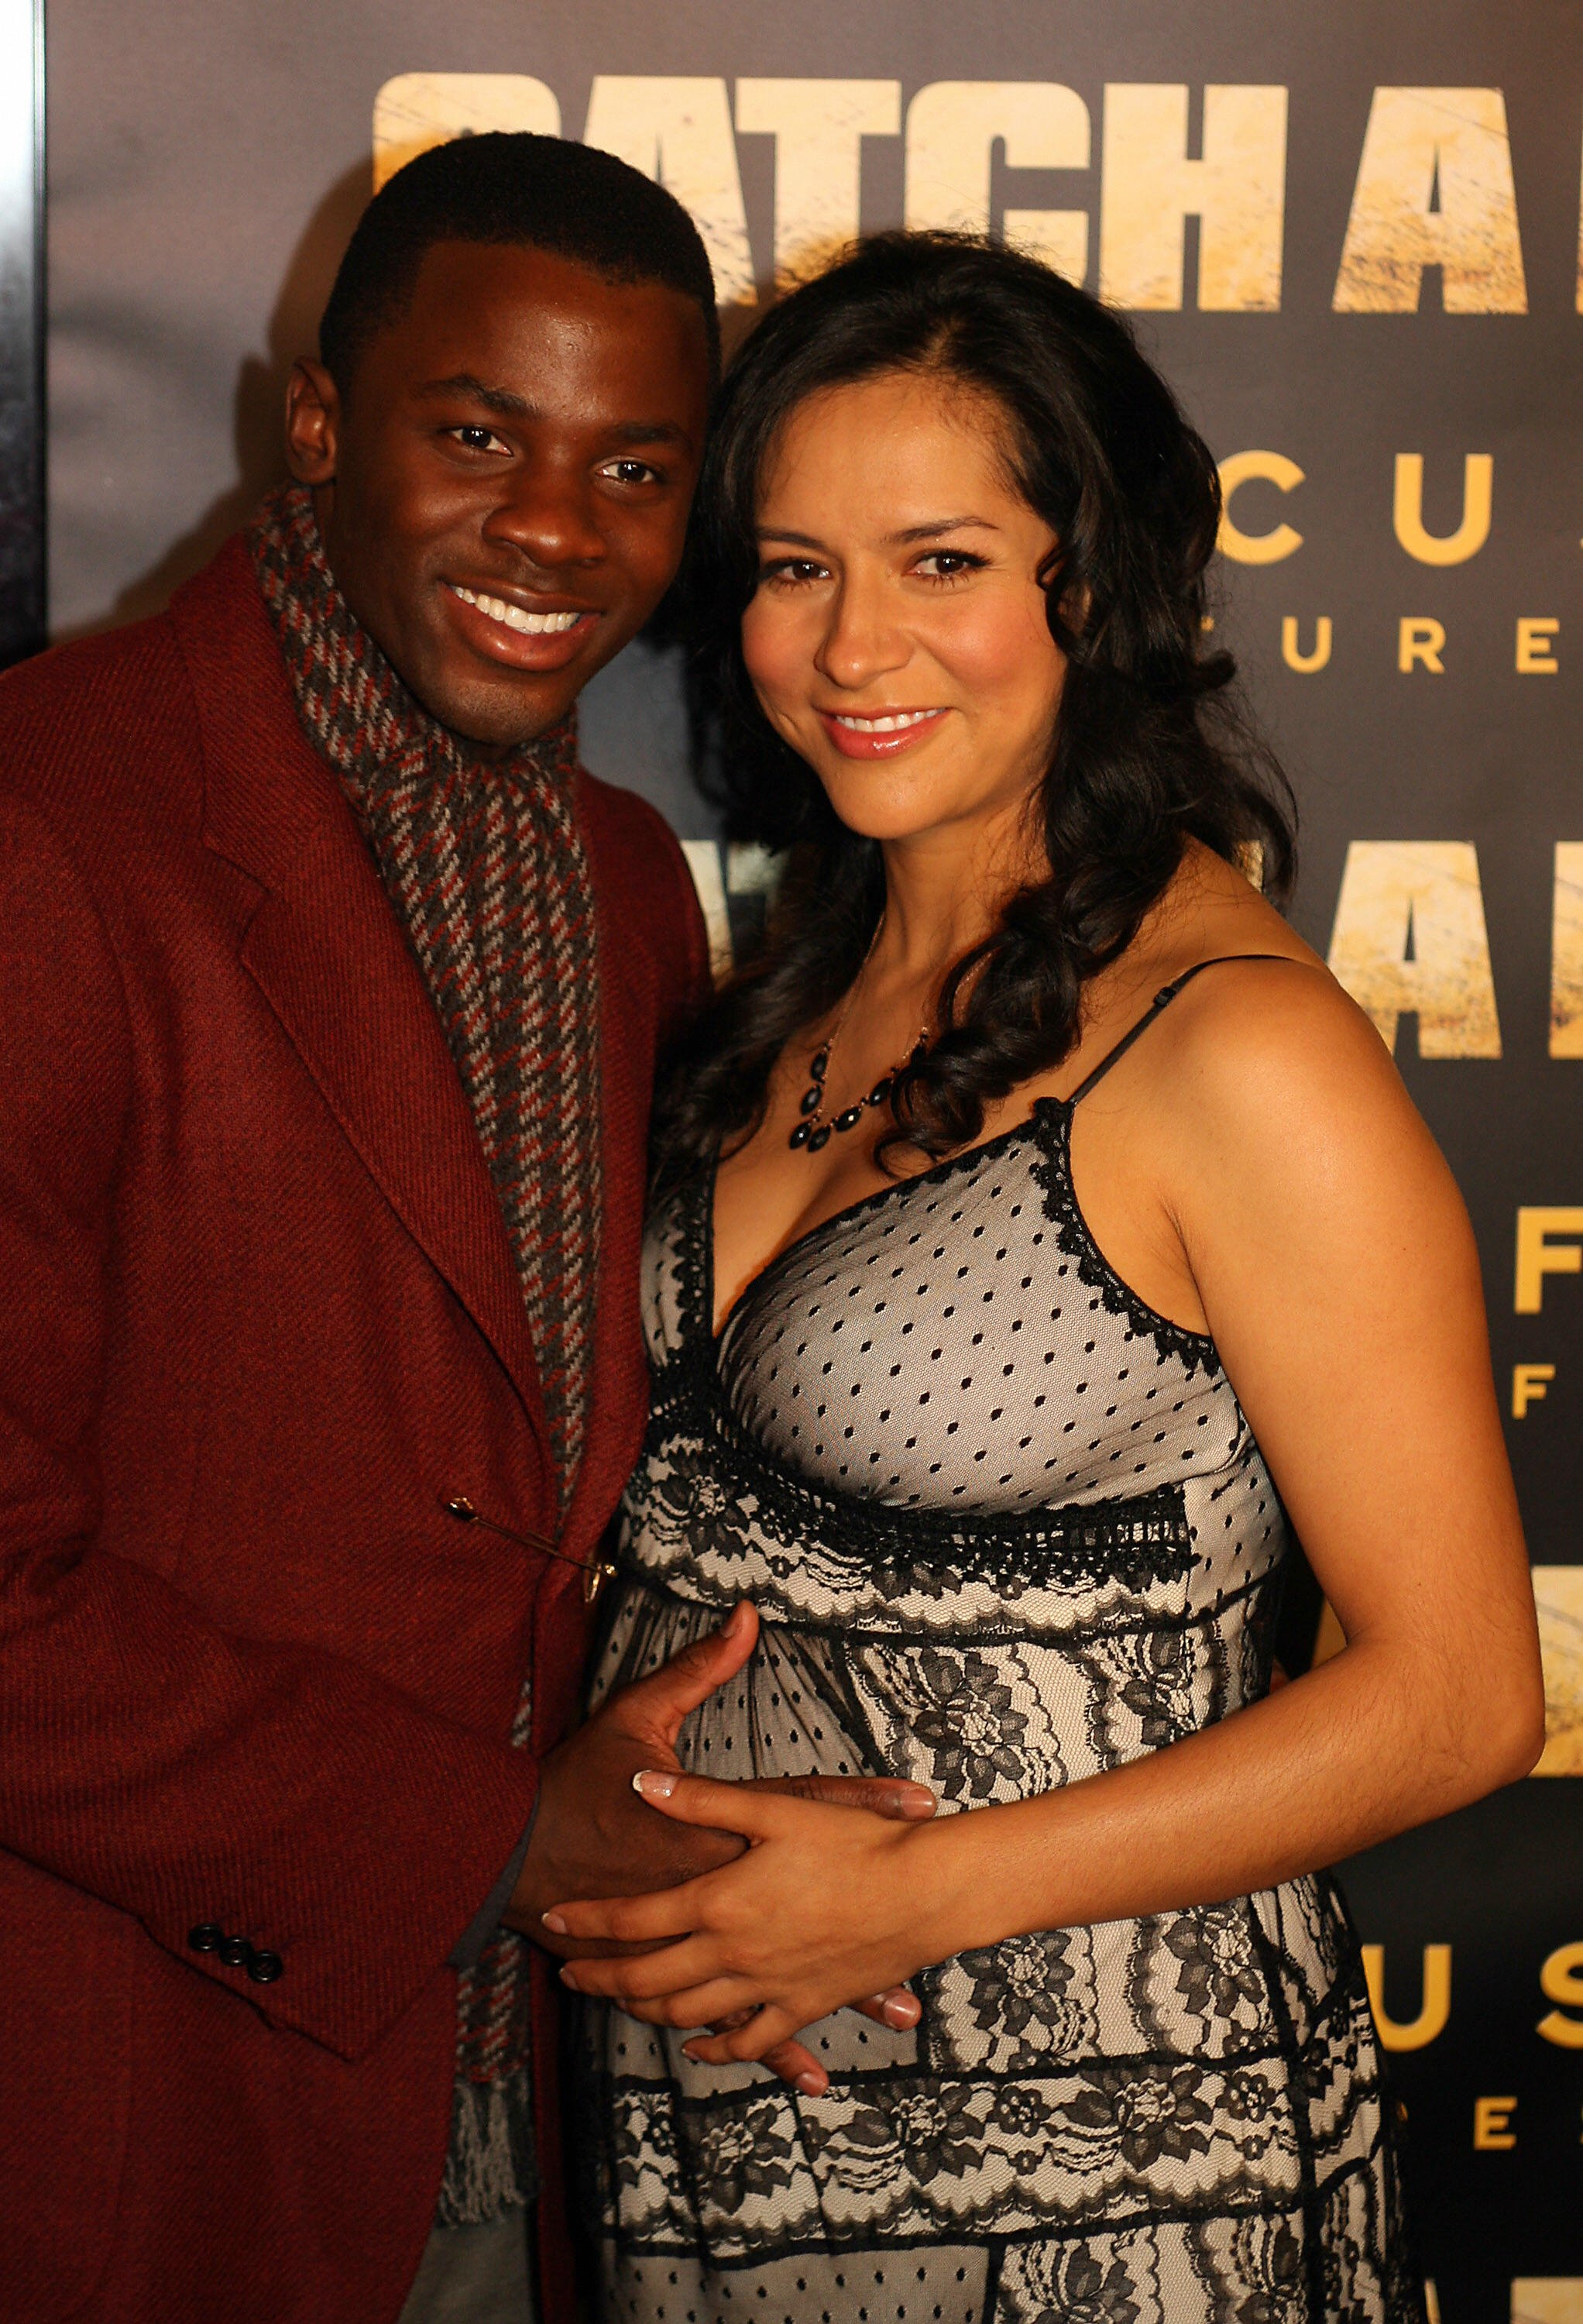 """Derek Luke and his wife Sophia Adella Hernandez at the premiere of """"Catch a Fire,"""" in Hollywood, October 25, 2006   Photo: Getty Images"""